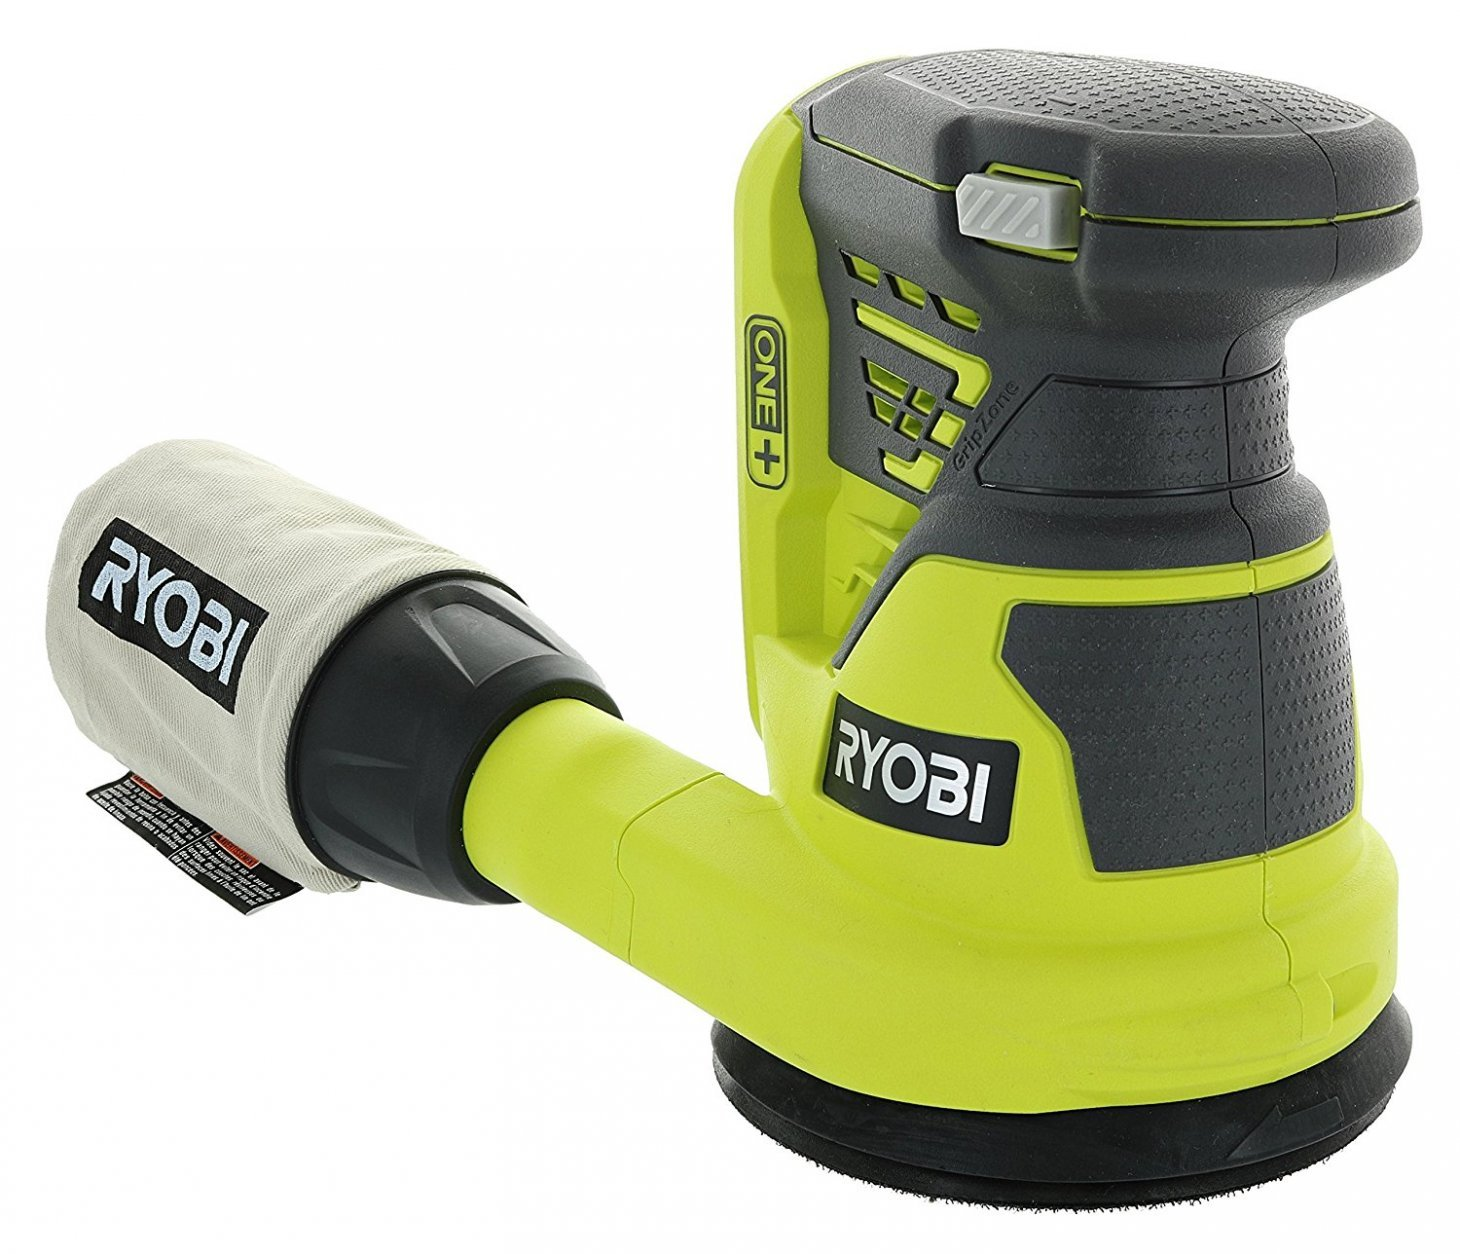 Ryobi P411 One+ 18 Volt 5 Inch Cordless Battery Operated Random Orbit Power Sander (Battery Not Included / Power Tool Only) by Ryobi